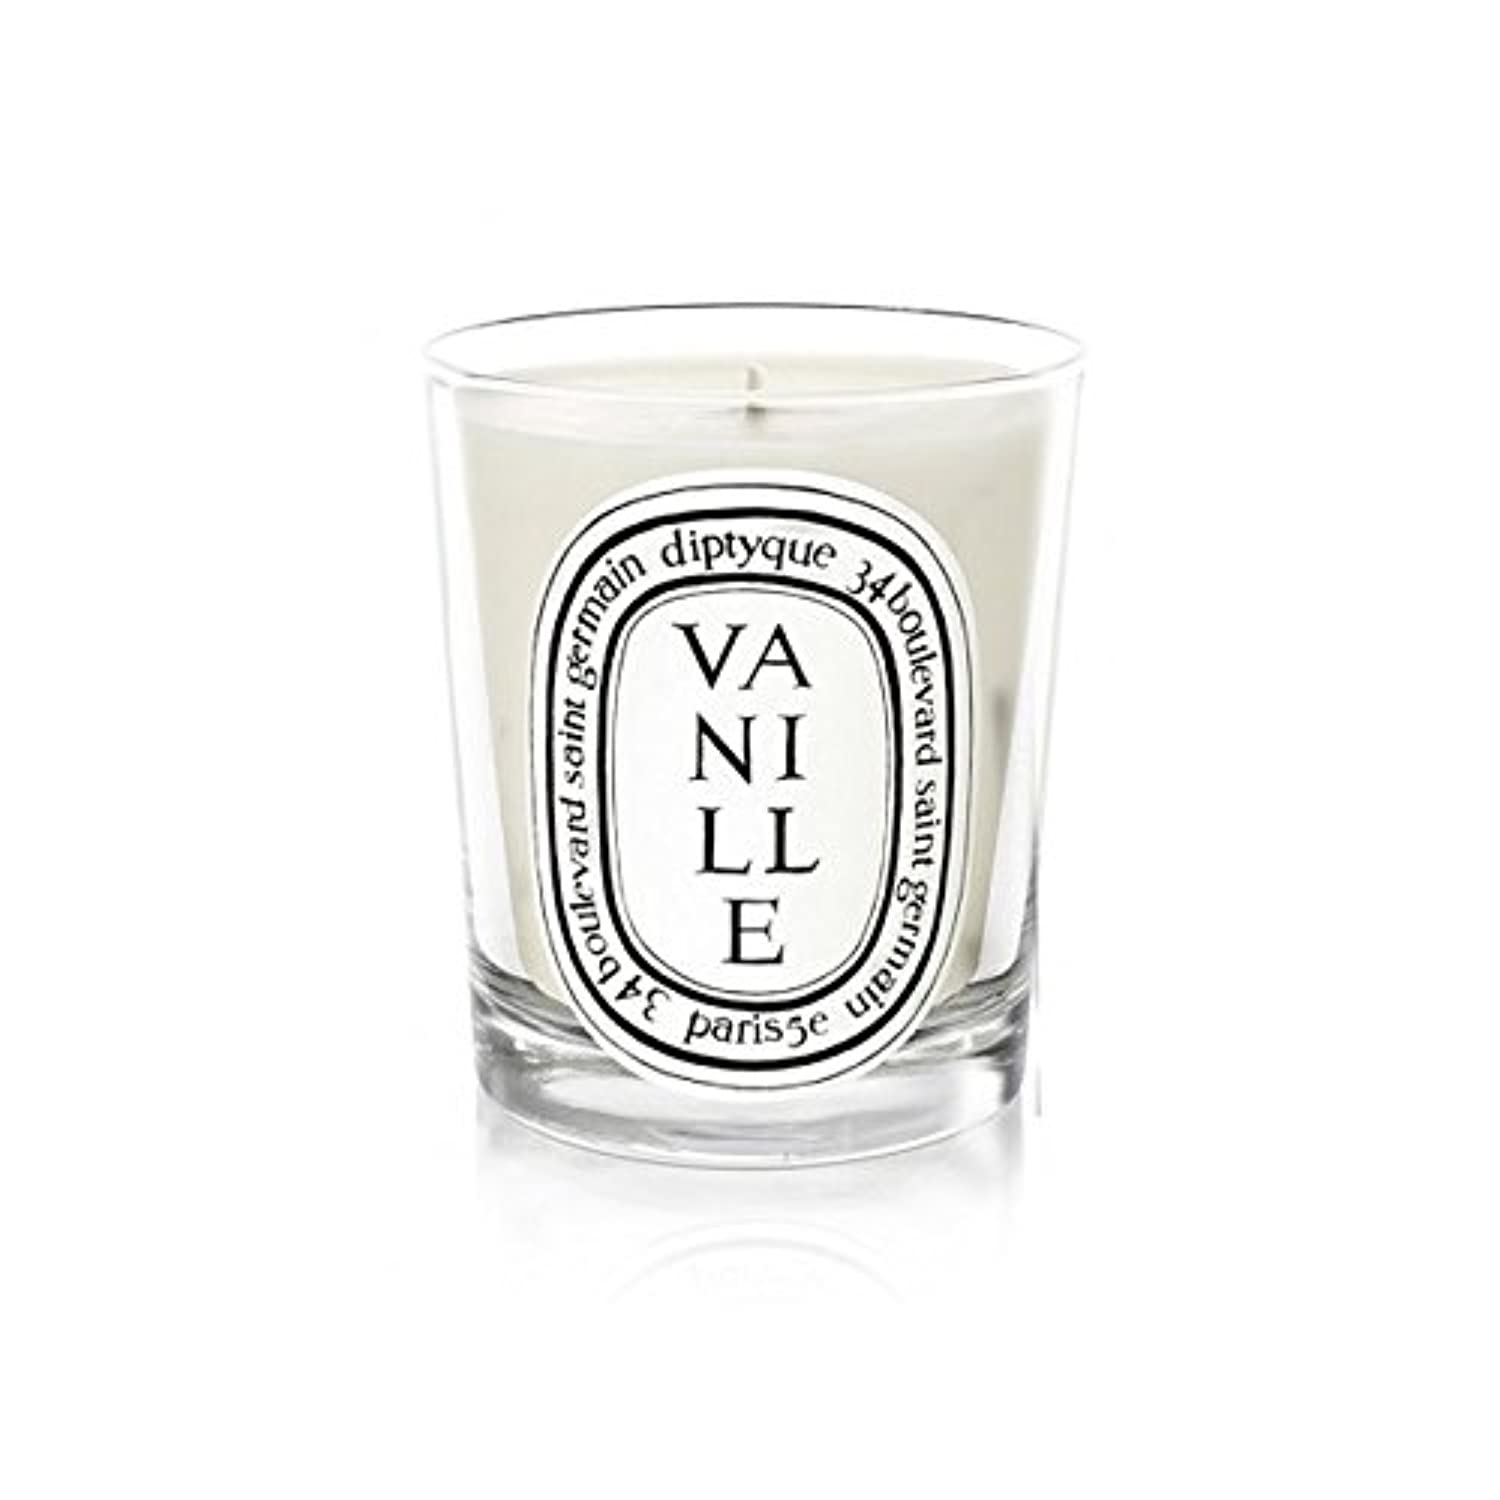 Diptyque Vanille Mini Candle 70g (Pack of 2) - Diptyqueのヴァニラミニキャンドル70グラム (x2) [並行輸入品]